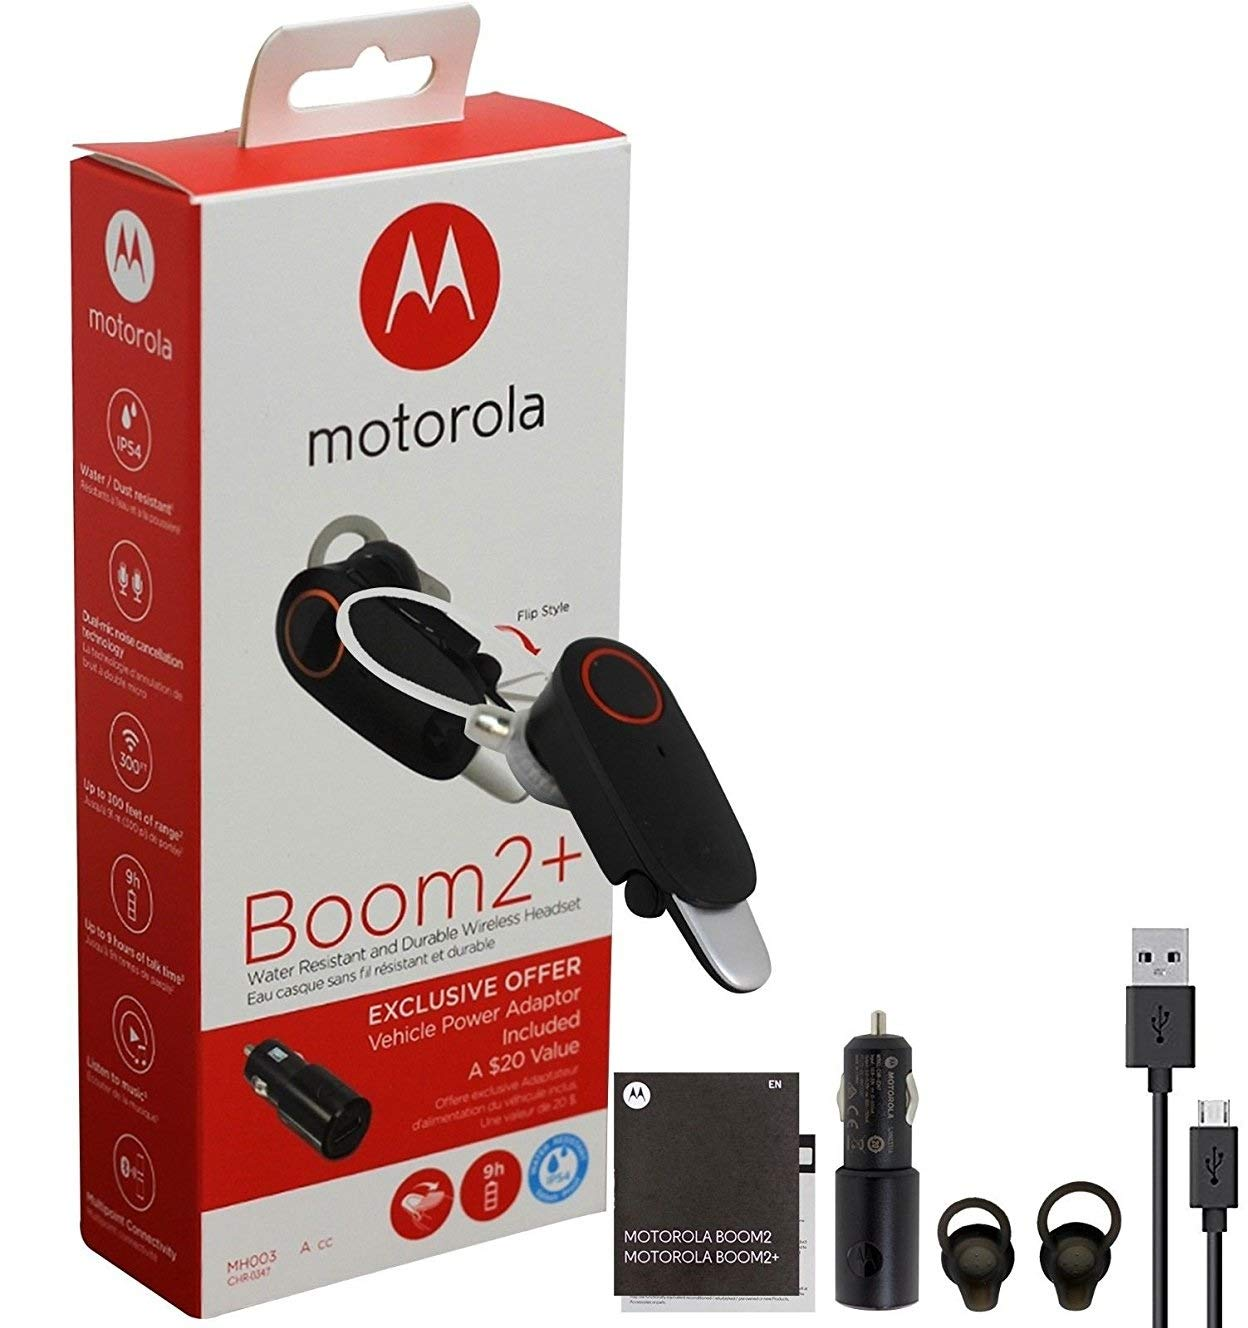 Motorola Boom 2+''HD Flip Bluetooth - Water Resistant Durable Wireless Headset W/Car Charger, (US Retail Packing